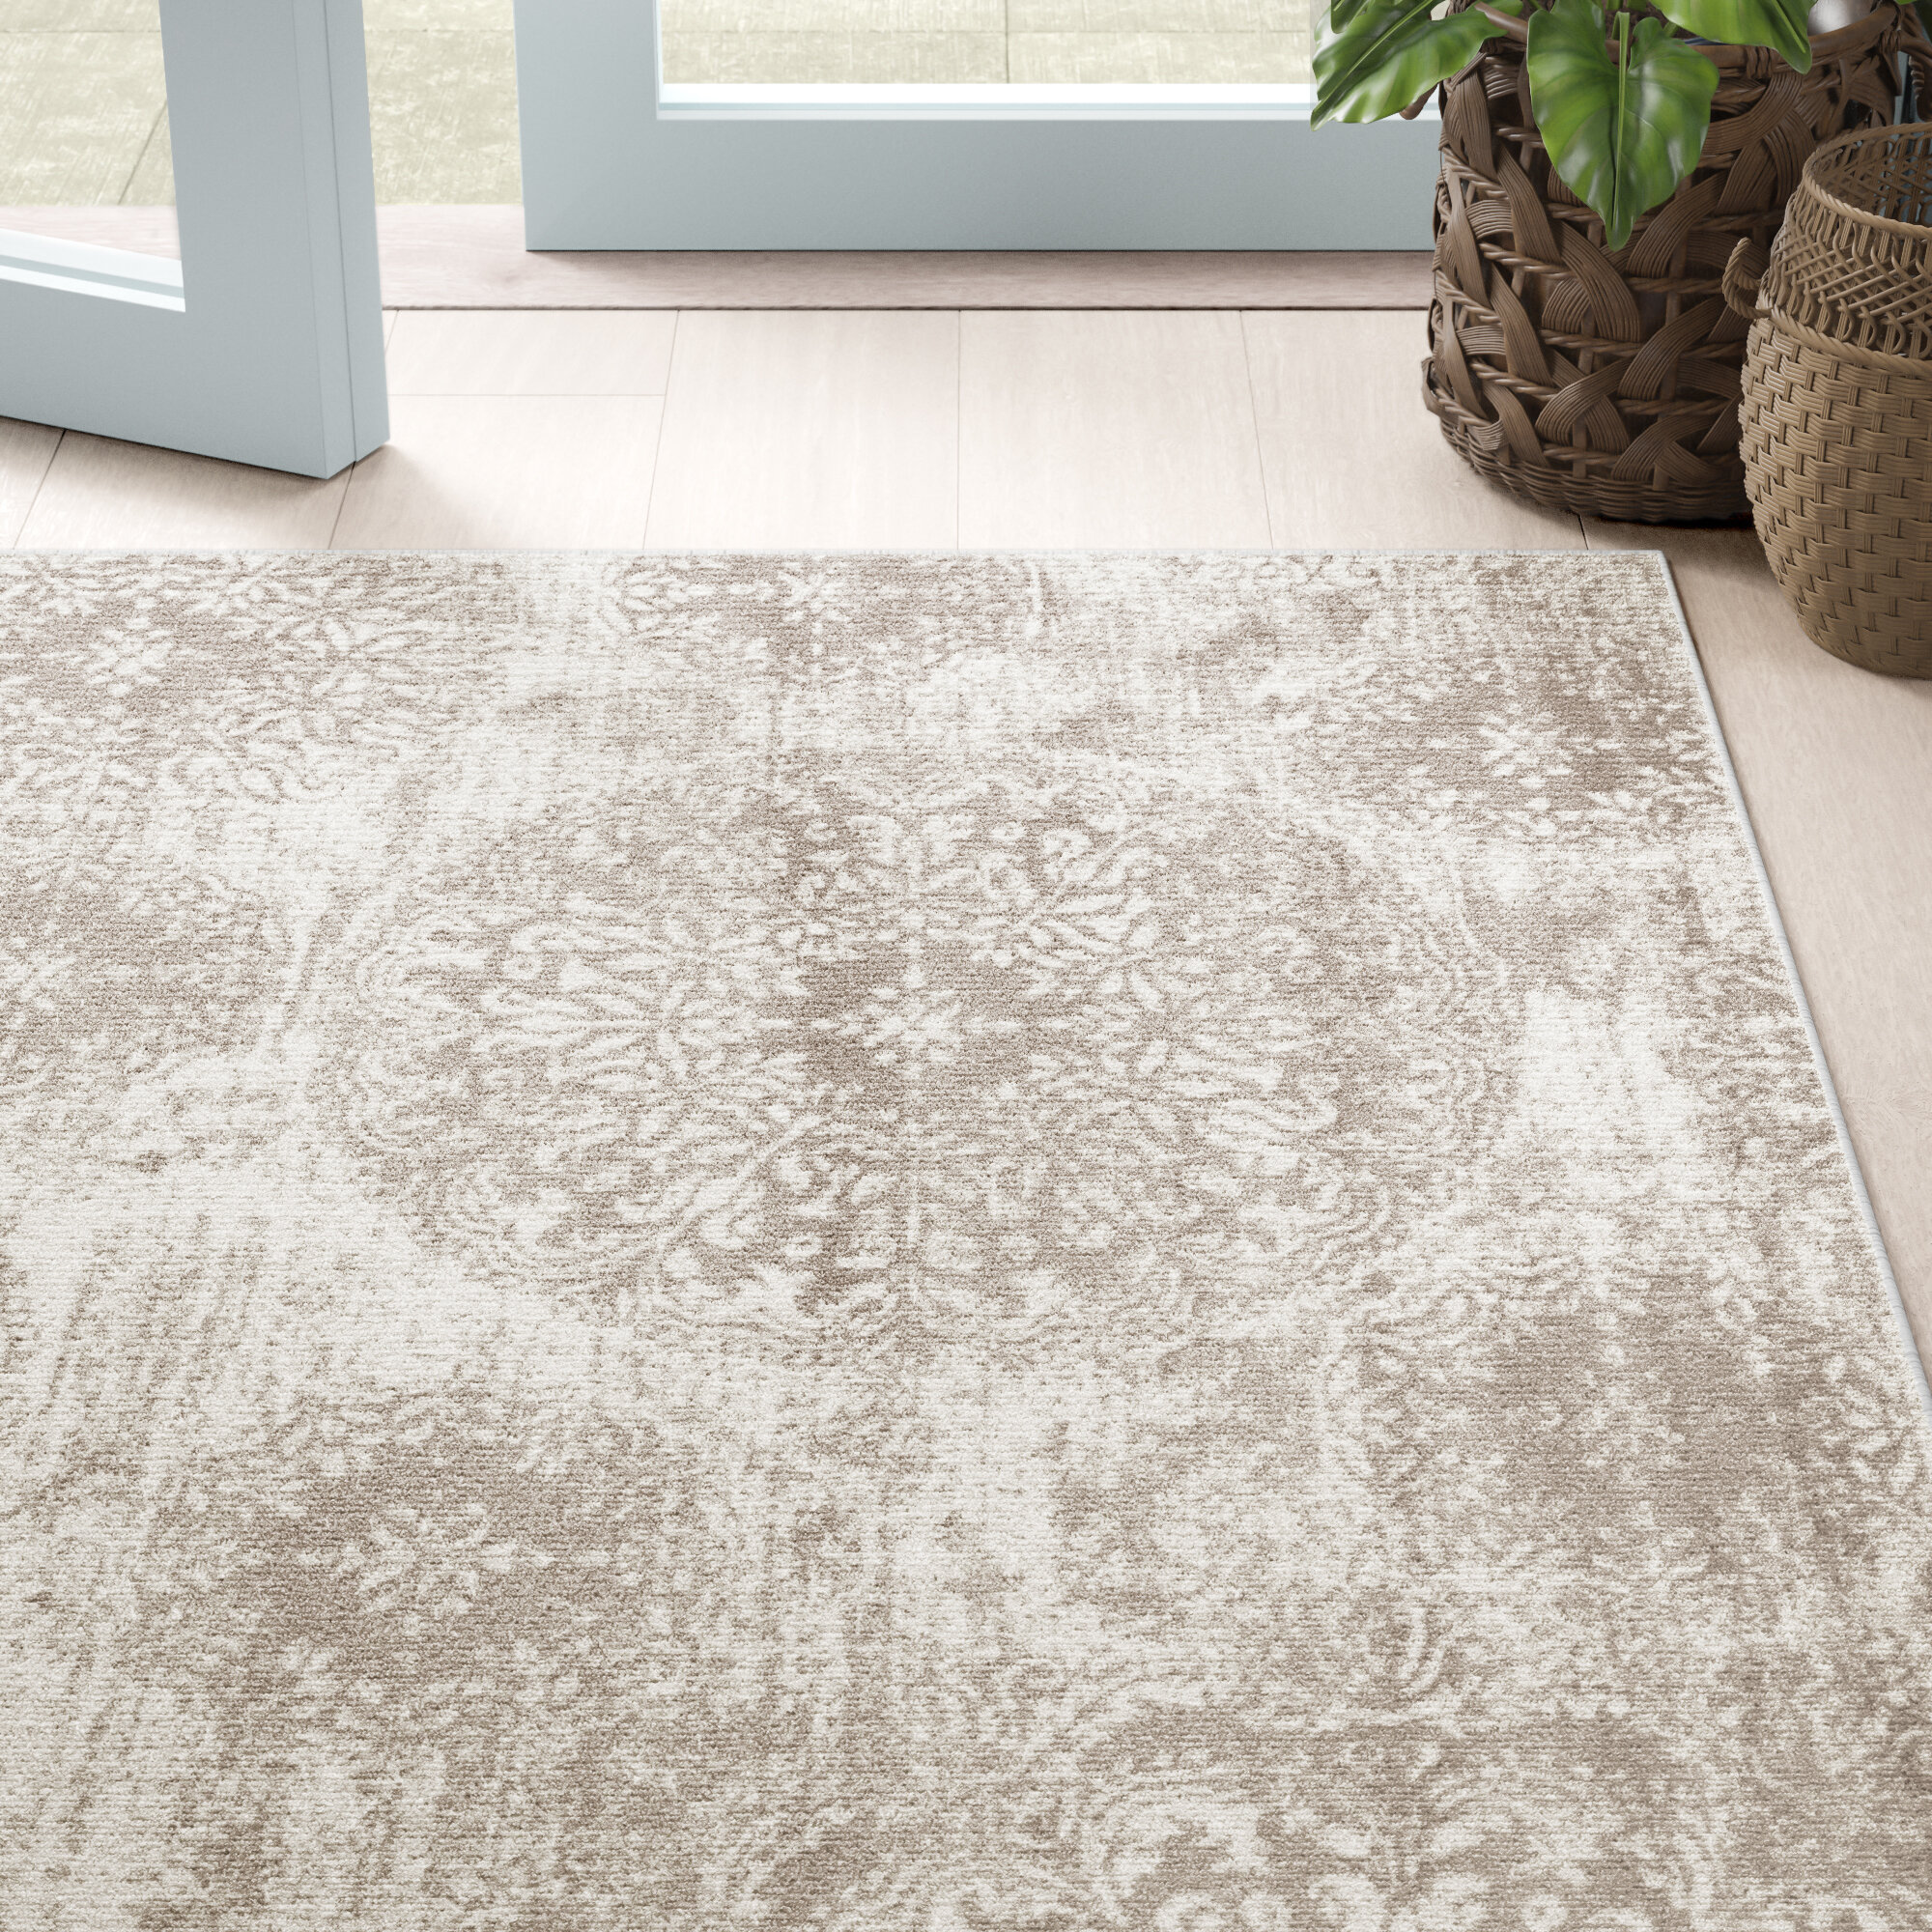 9 X 12 Floral Plant Area Rugs You Ll Love In 2021 Wayfair